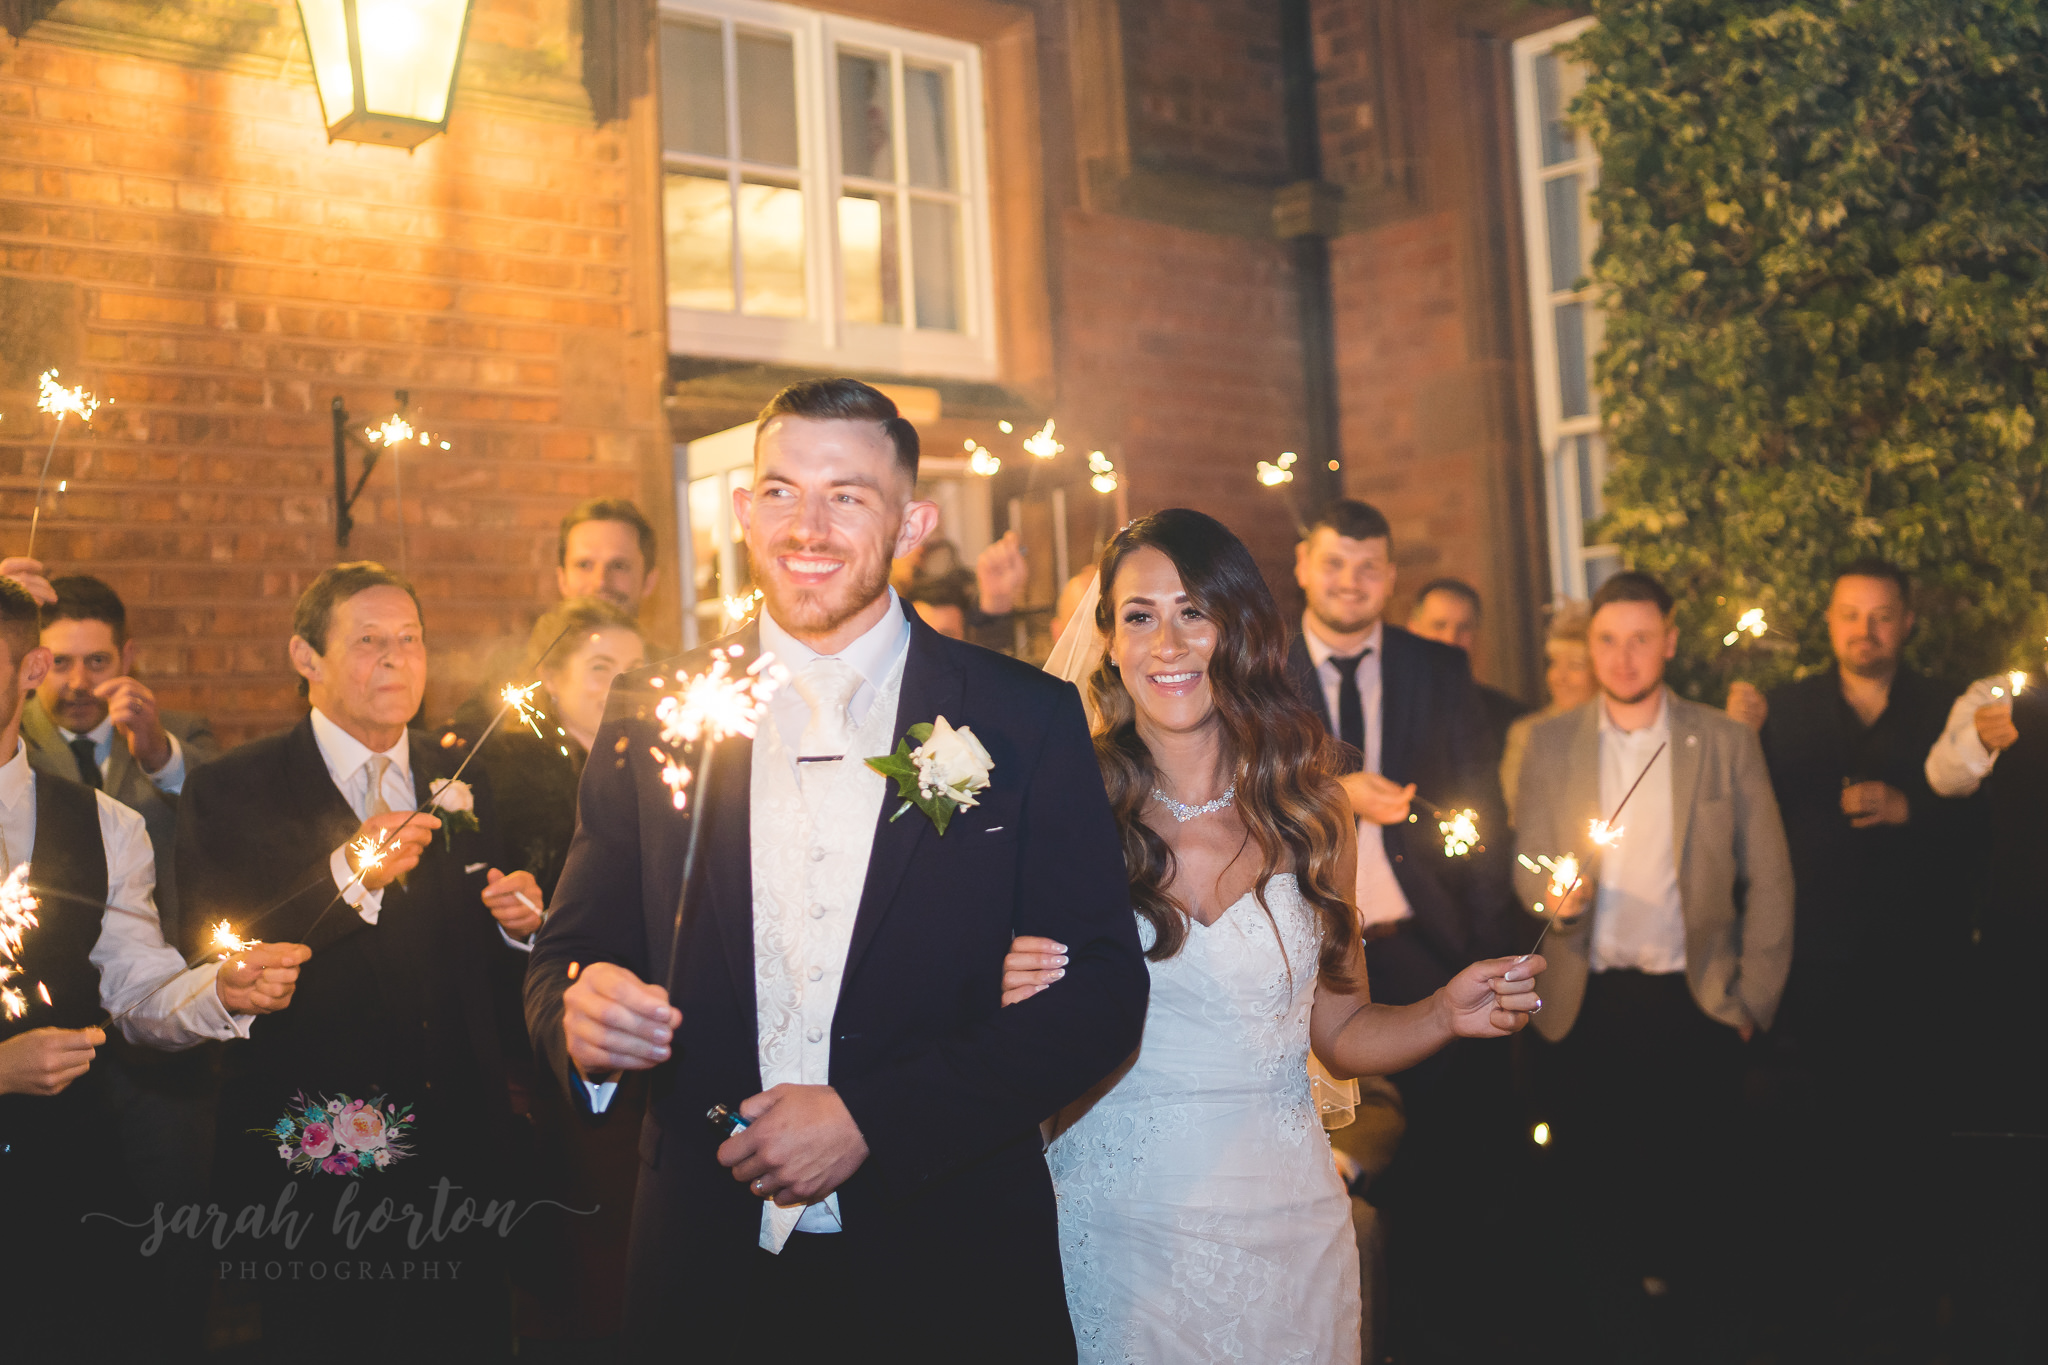 Wedding Photography At Nunsmere Hall, Cheshire